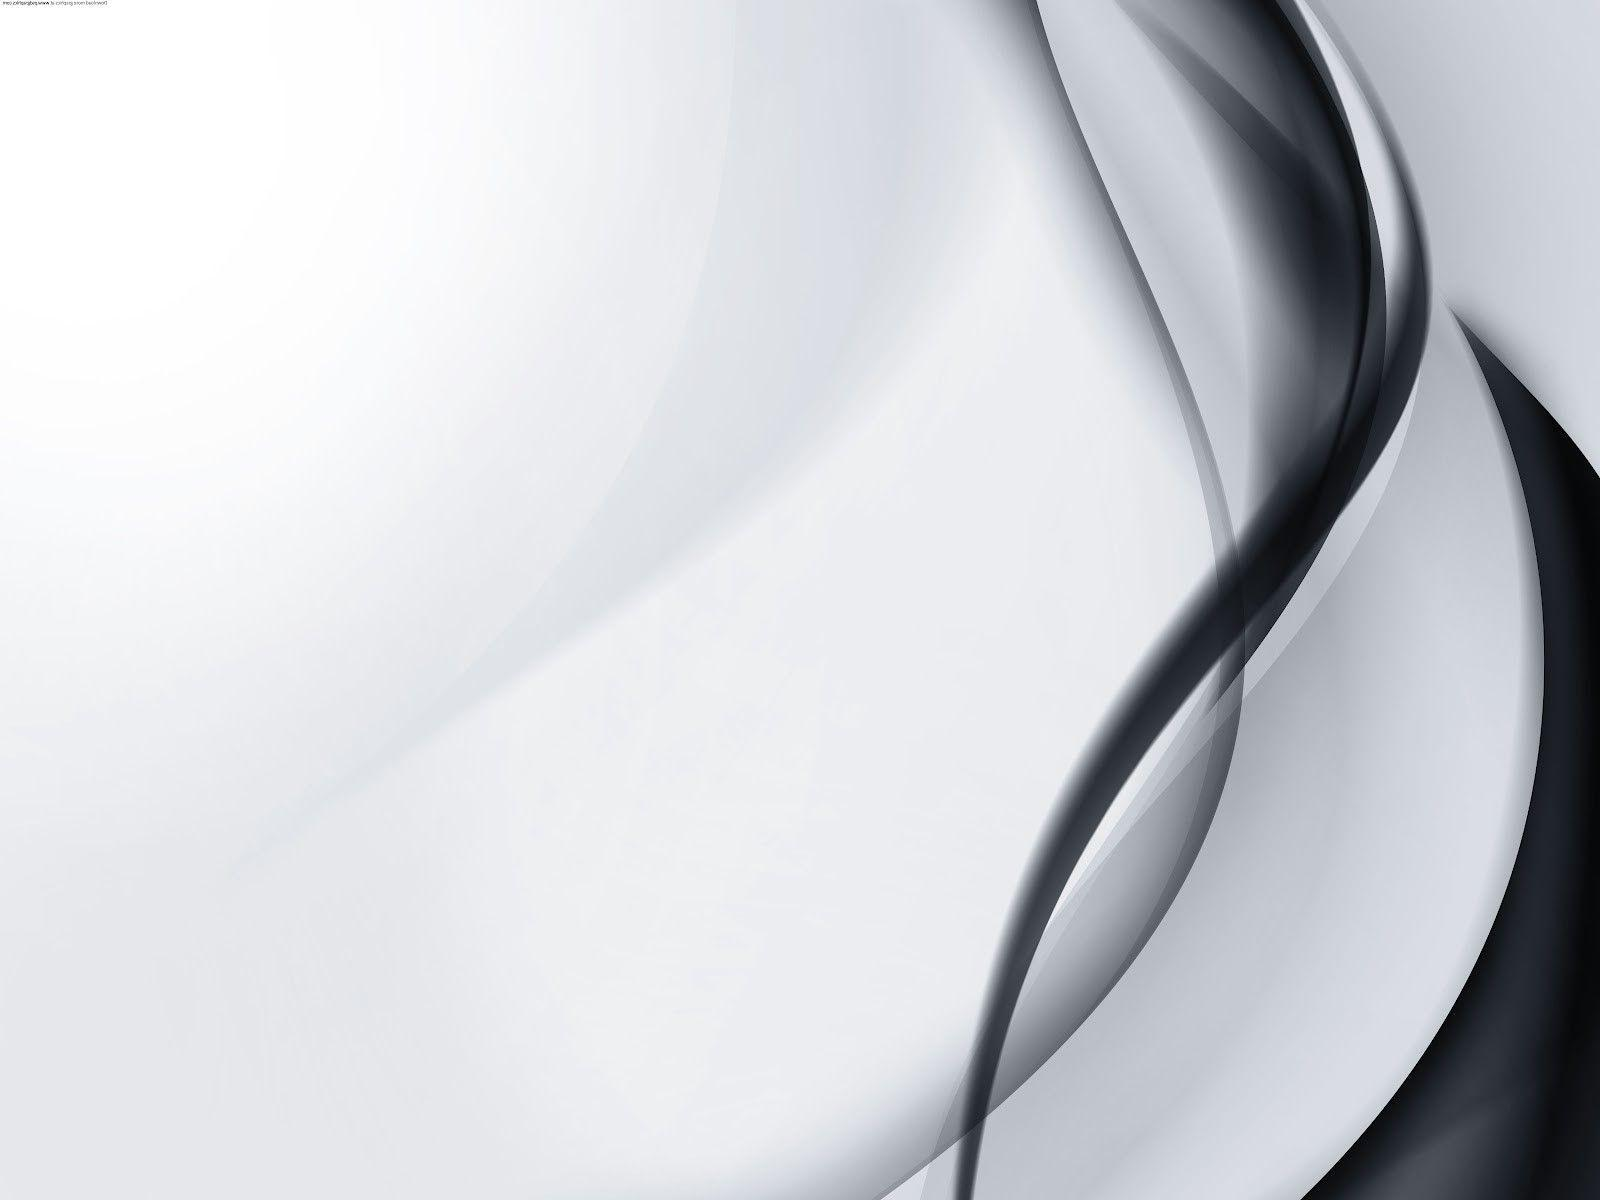 Wallpapers Hd Abstract White Wallpaper Cave